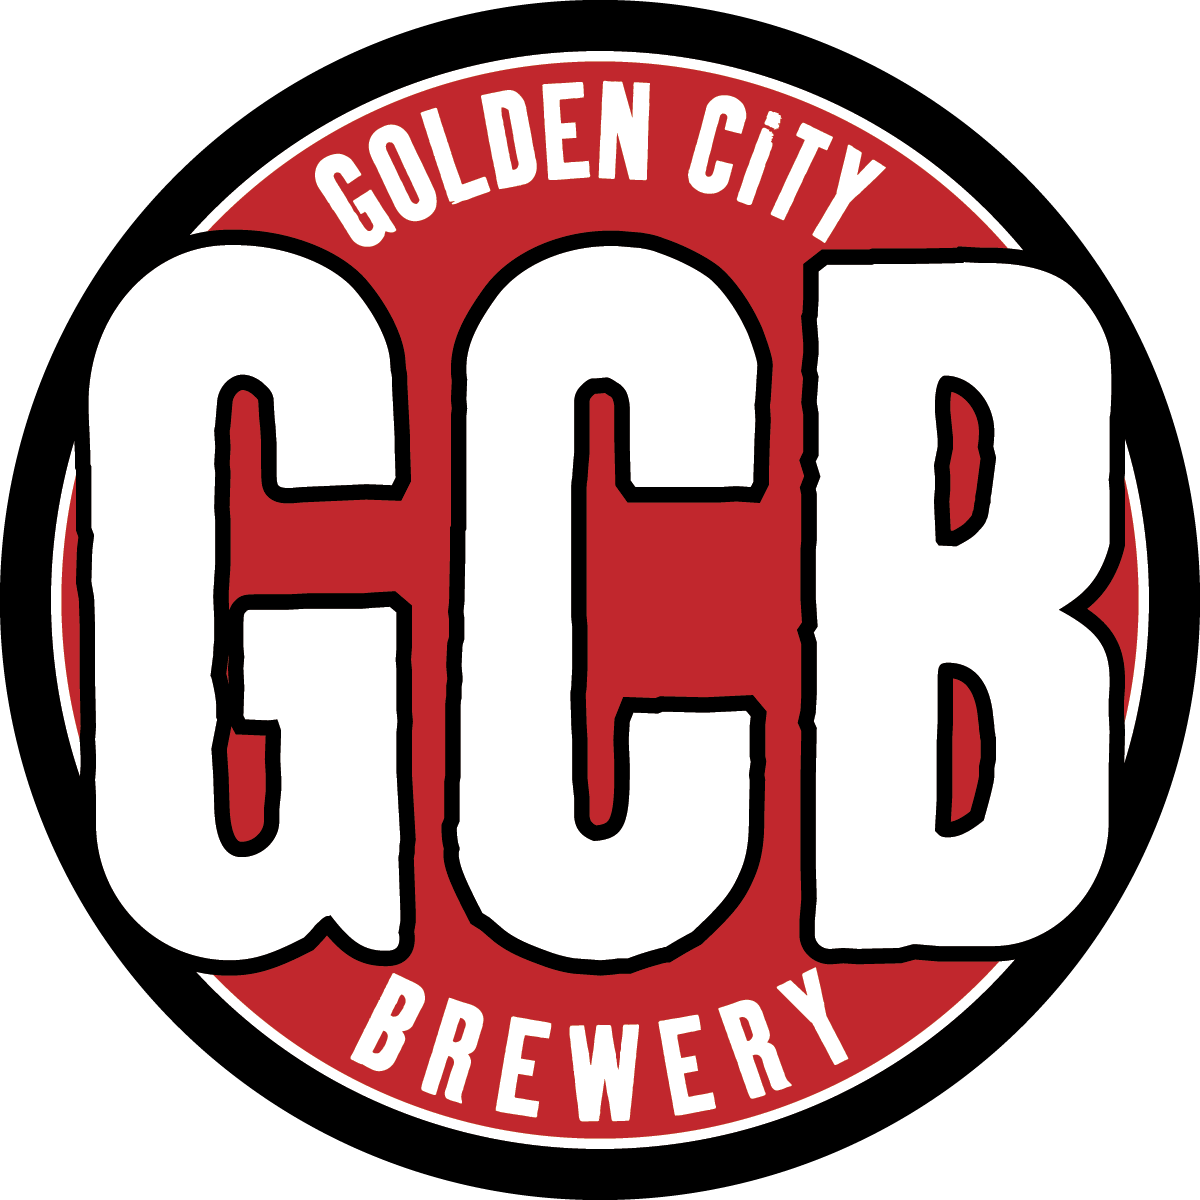 Thanks to GCB for providing beer for our events during ARTSWEEK!